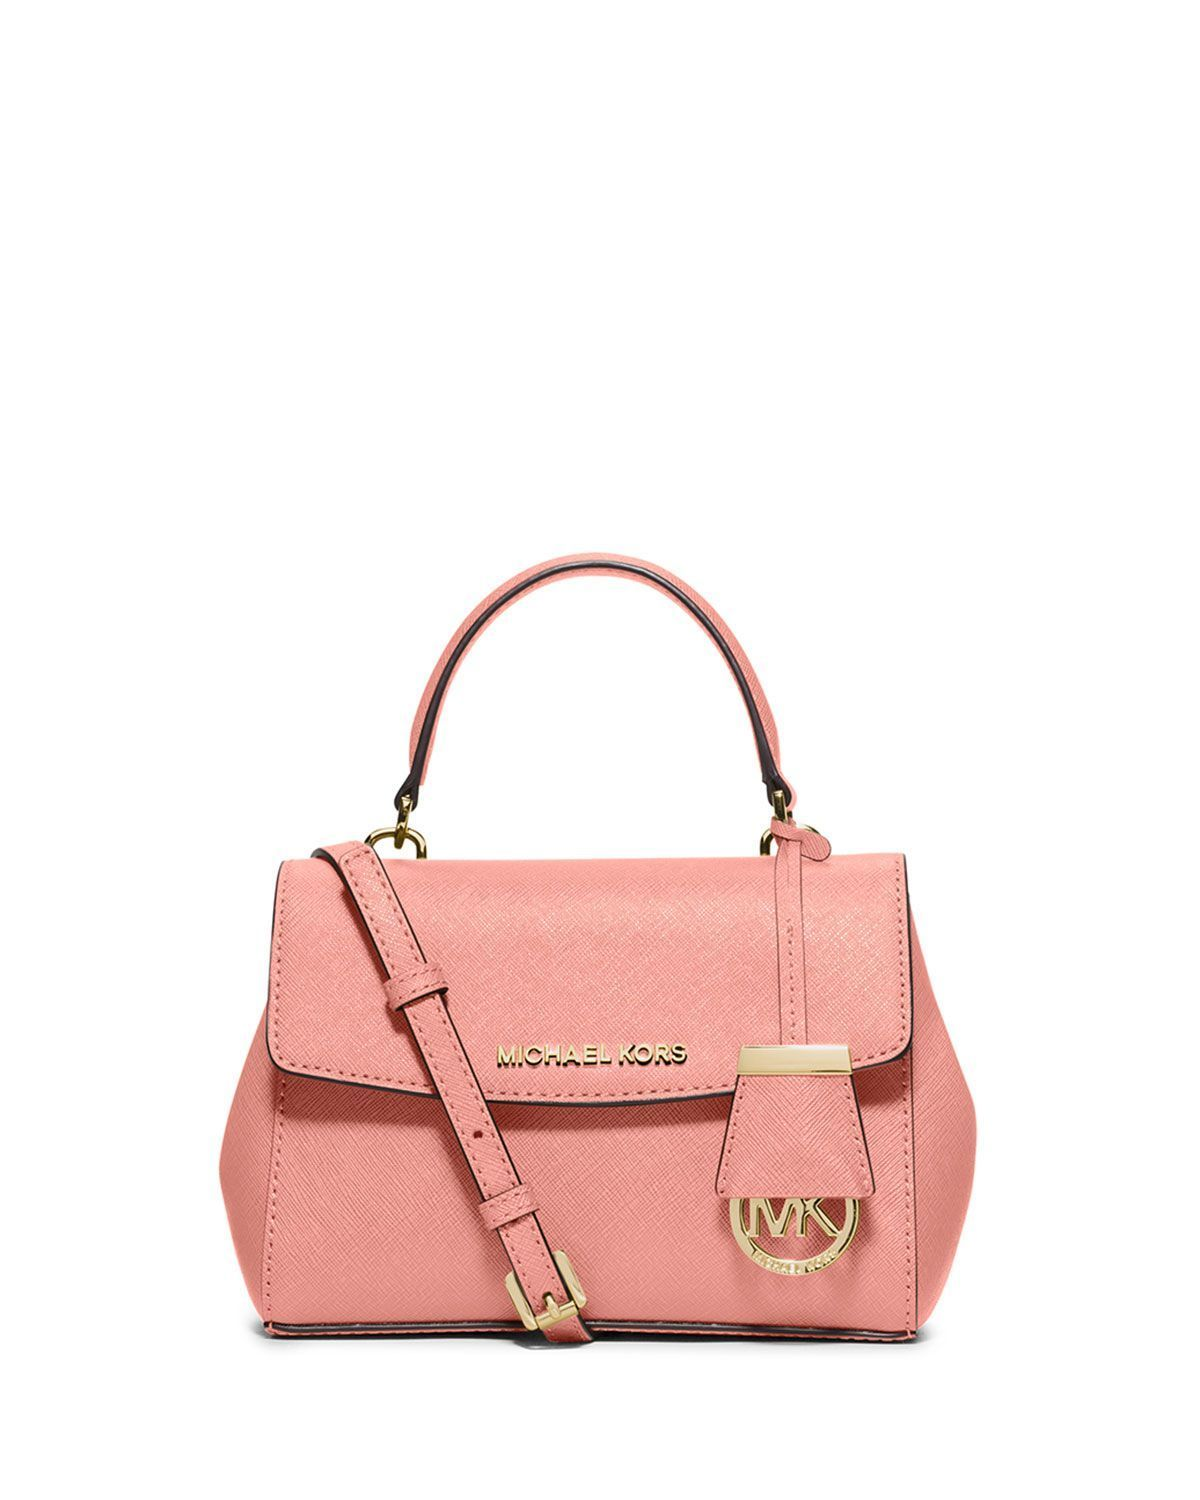 ea78c3a8f9ca MICHAEL Michael Kors Ava Extra-Small Saffiano Leather Satchel Bag, Pale Pink  #palepinkmichaelkorsbag